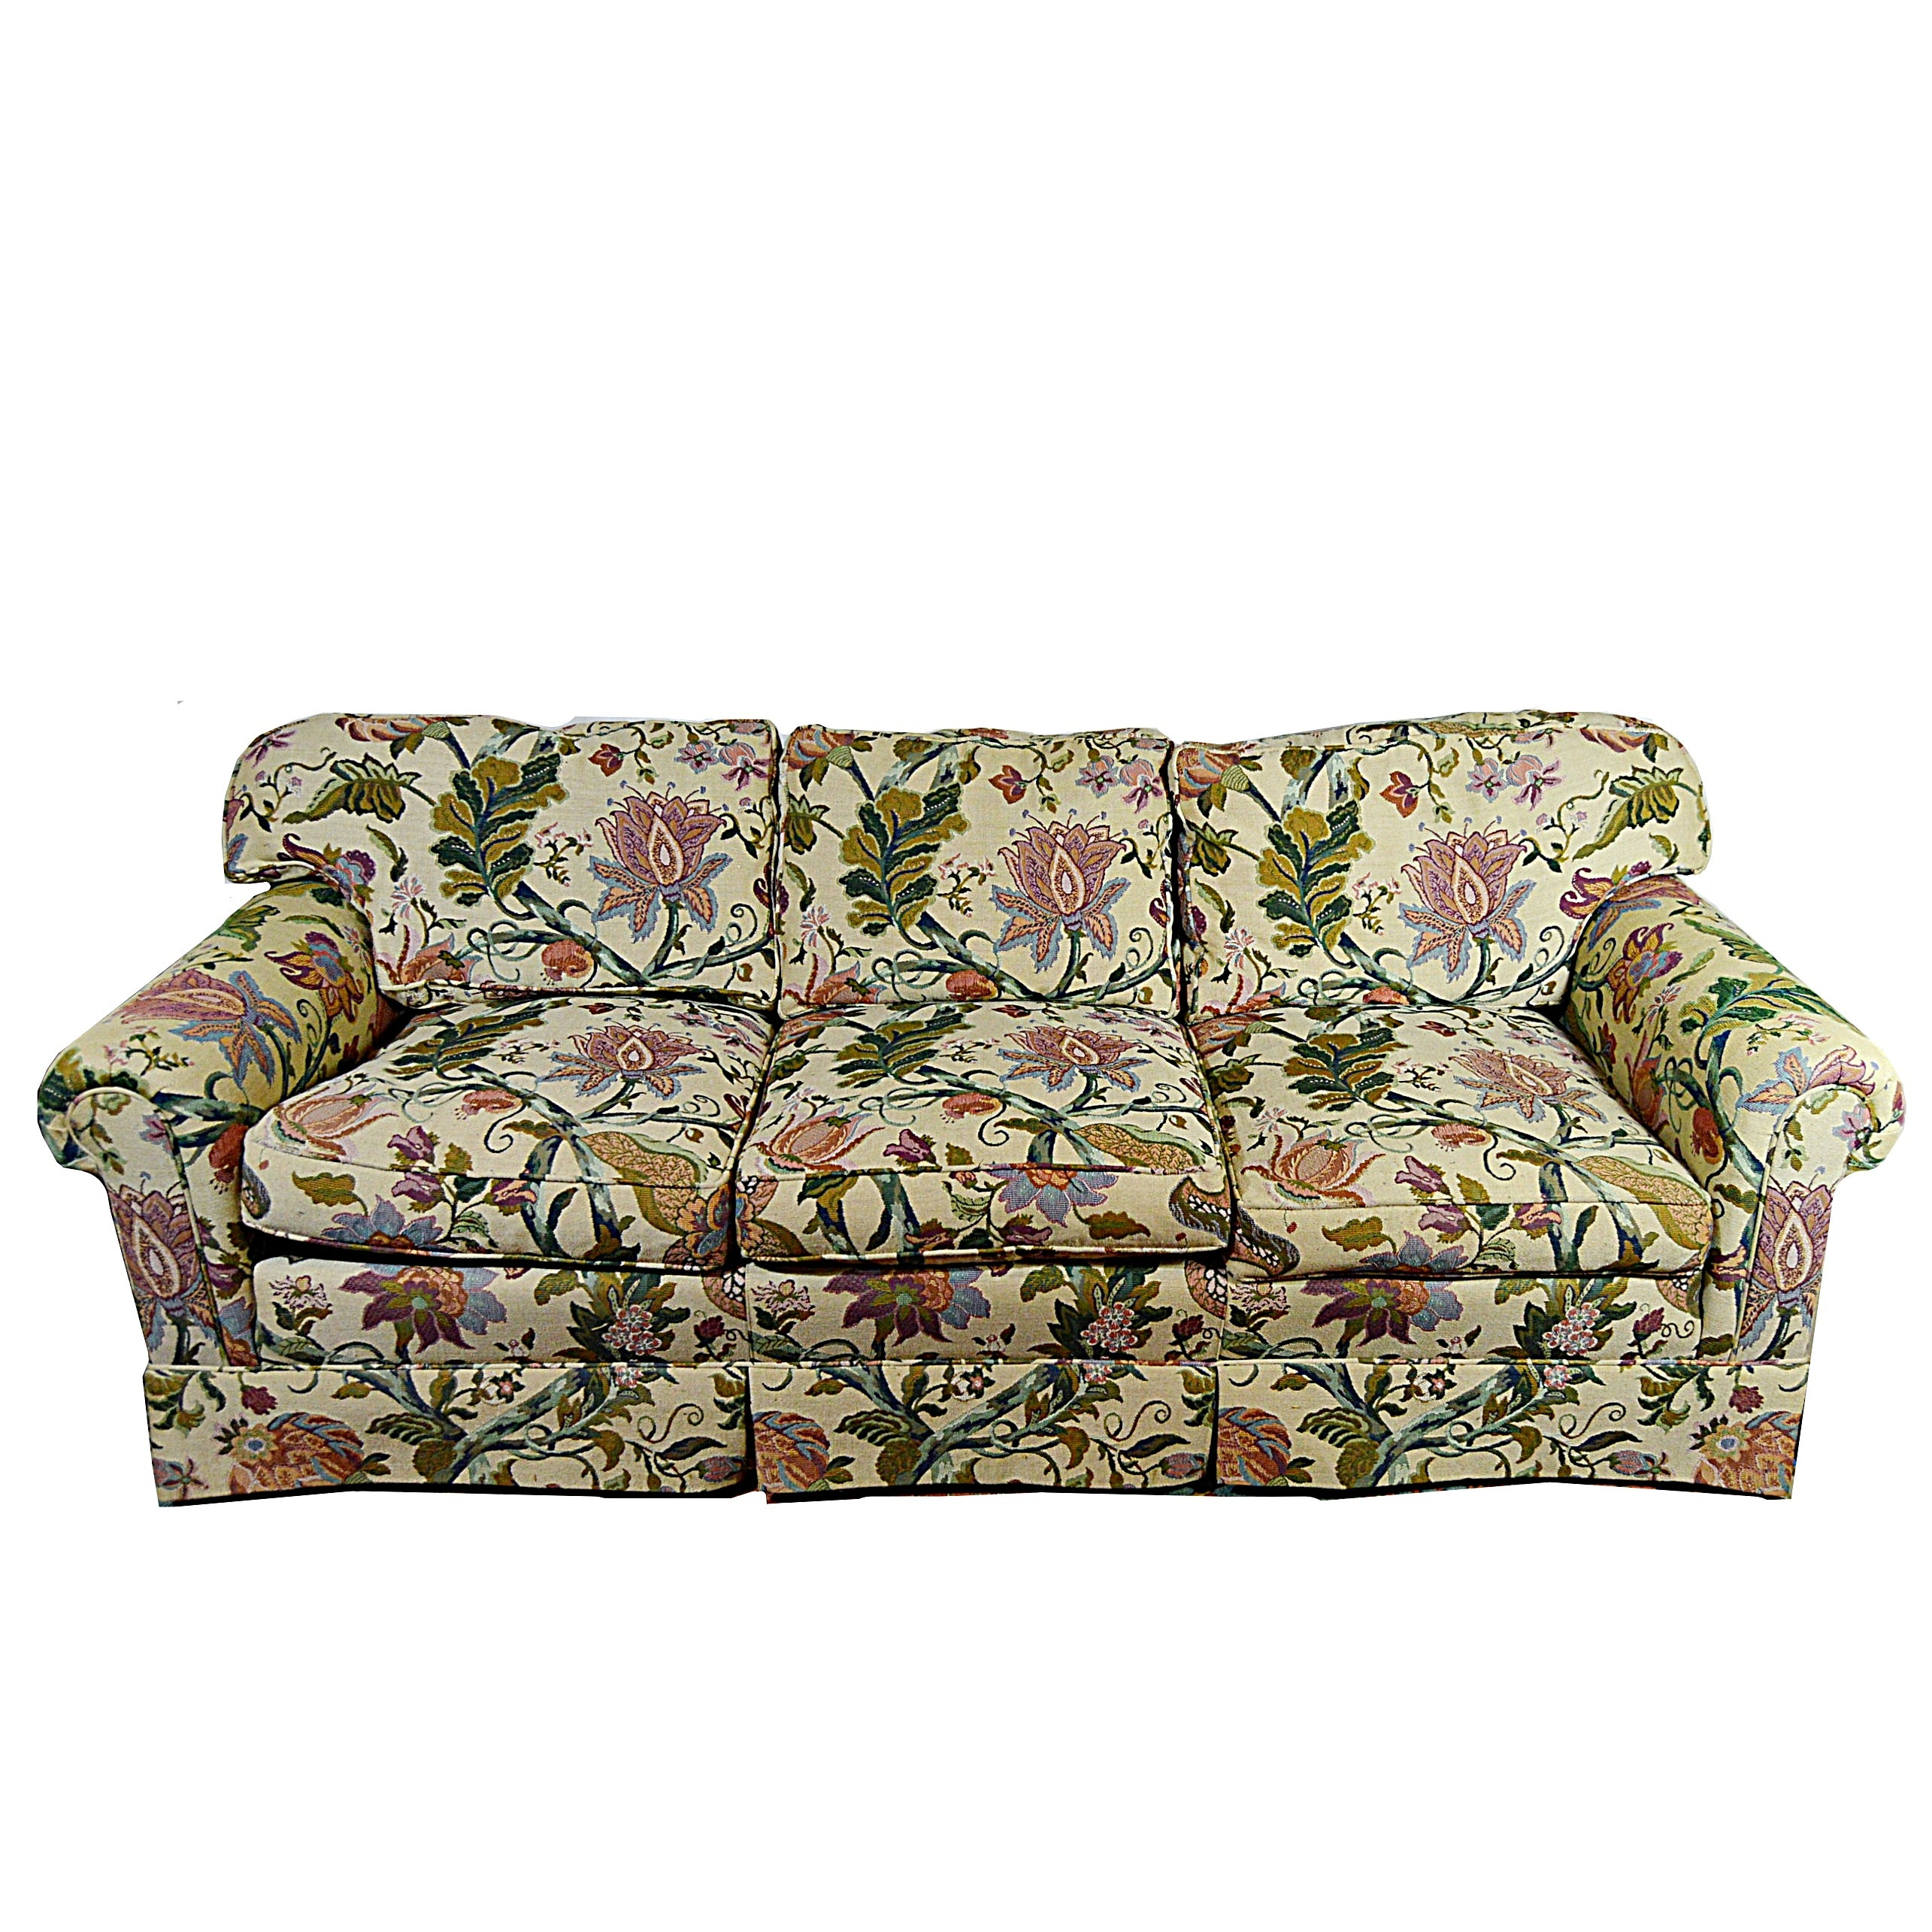 Henredon Schoonbeck Collection Down/Feather Filled Sofa ...